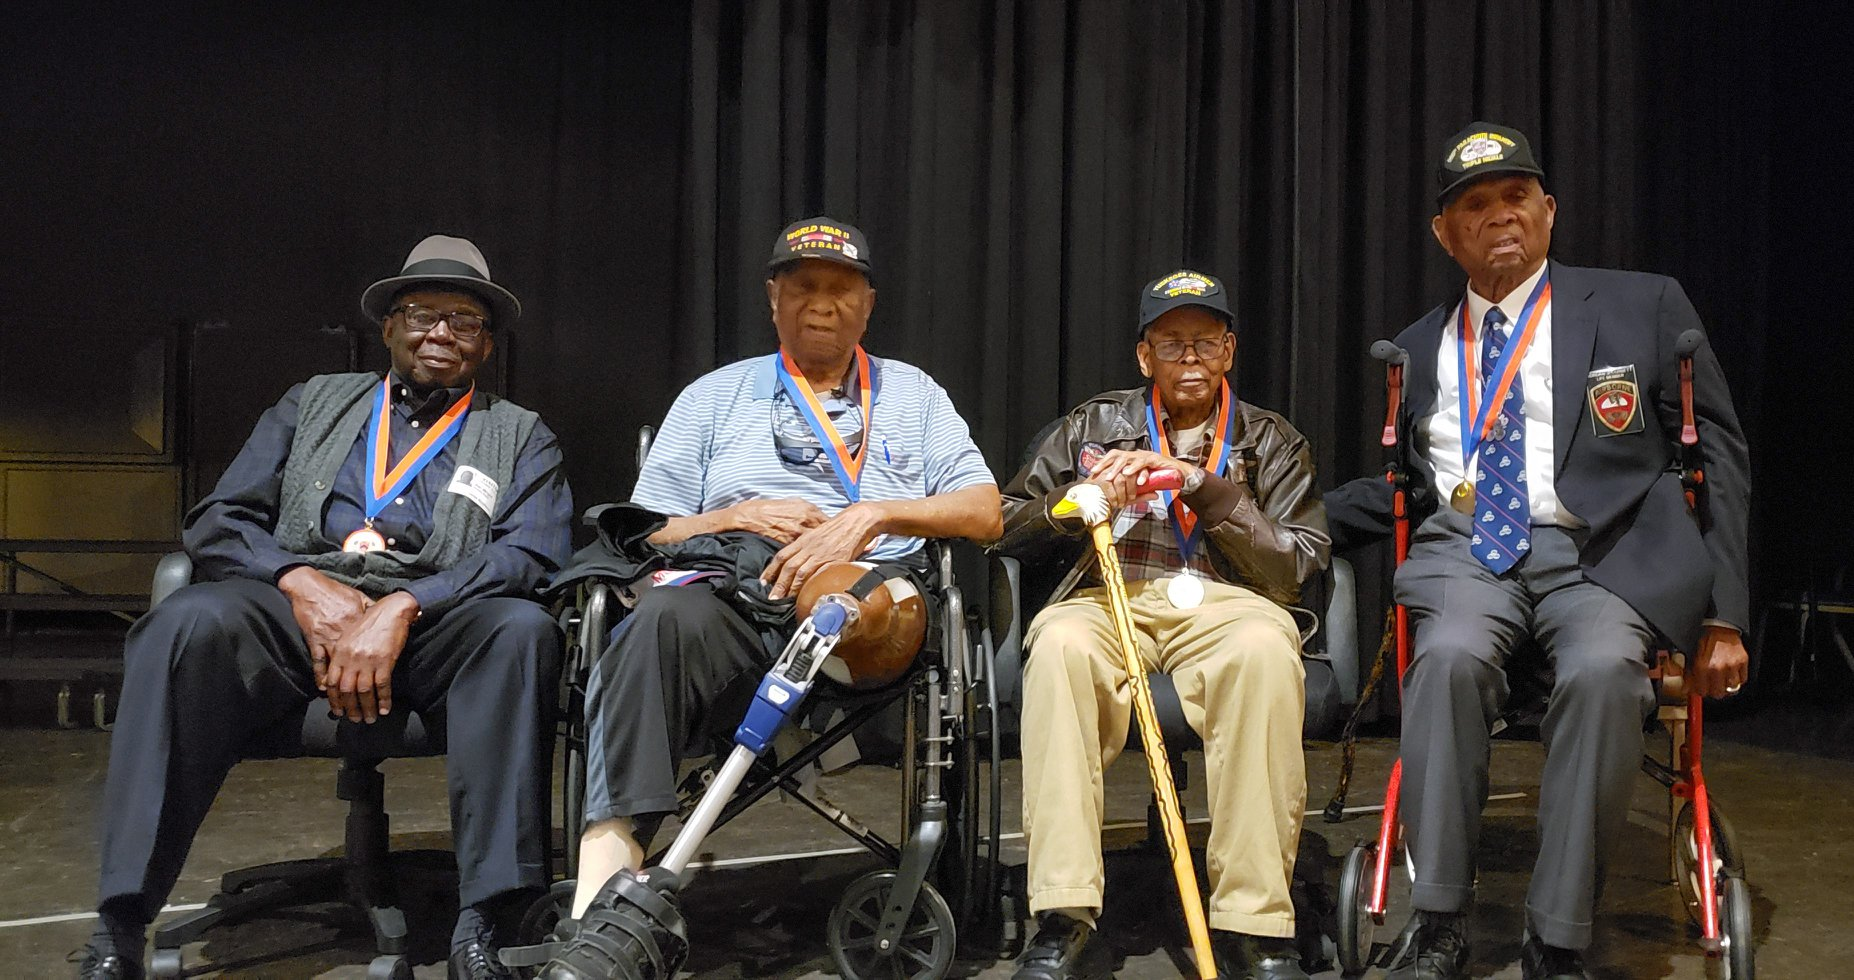 Four Former African American members sitting on a high school stage.